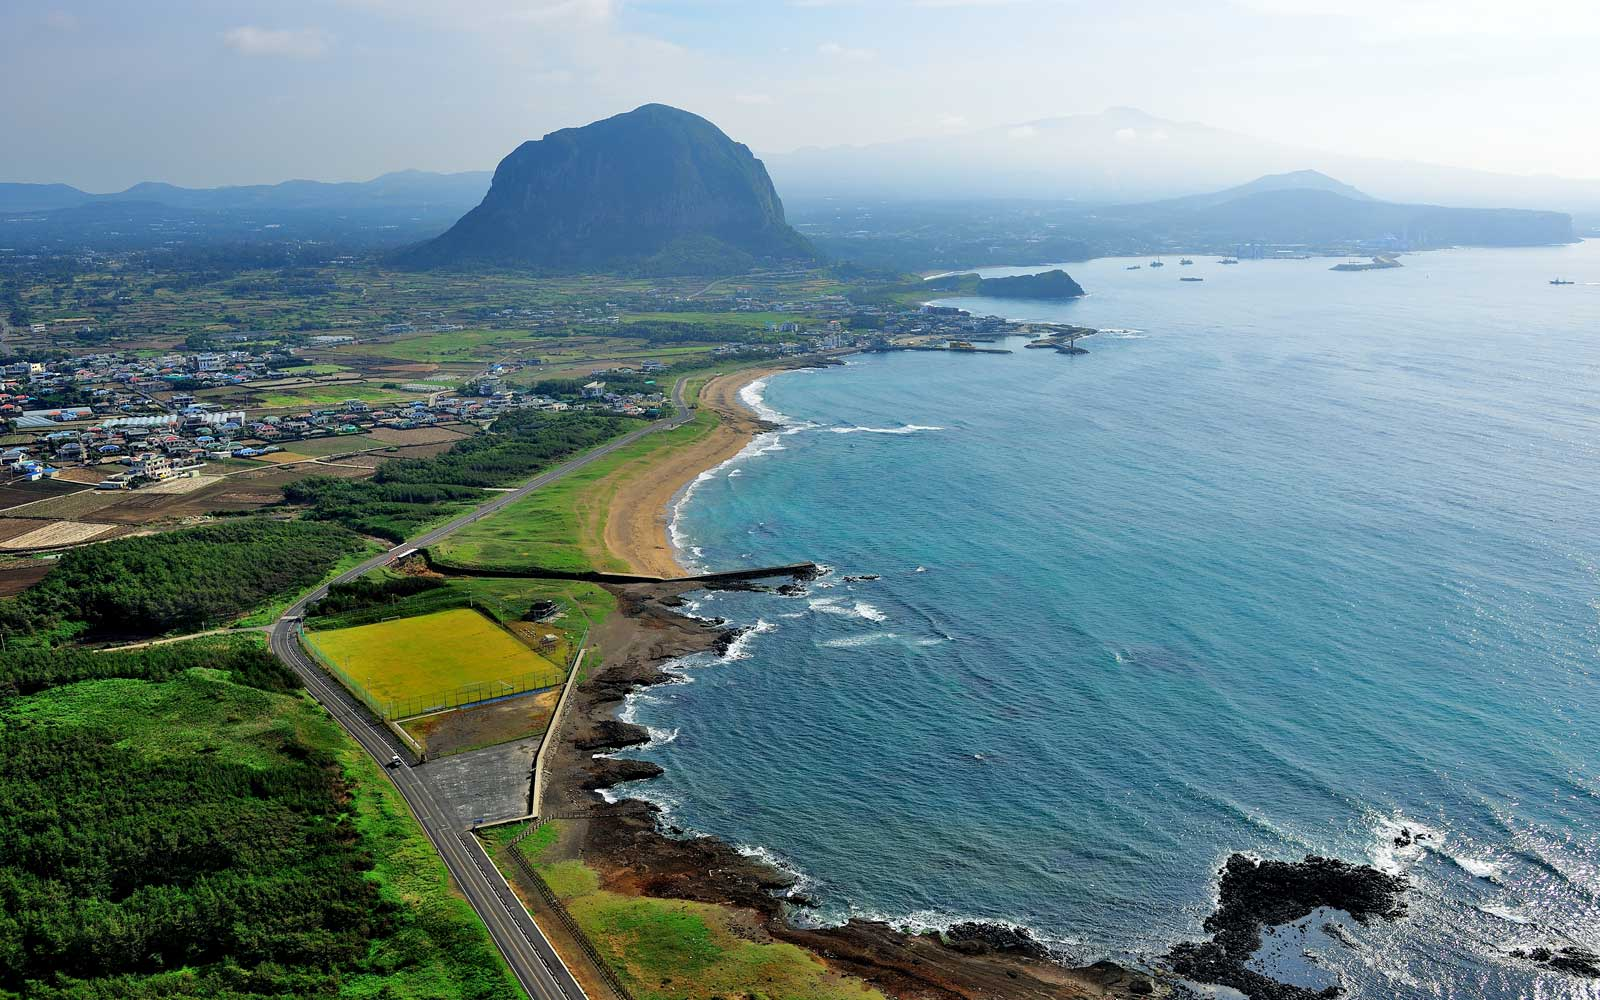 The route from Seoul to Korea's Jeju island is the busiest in the world.